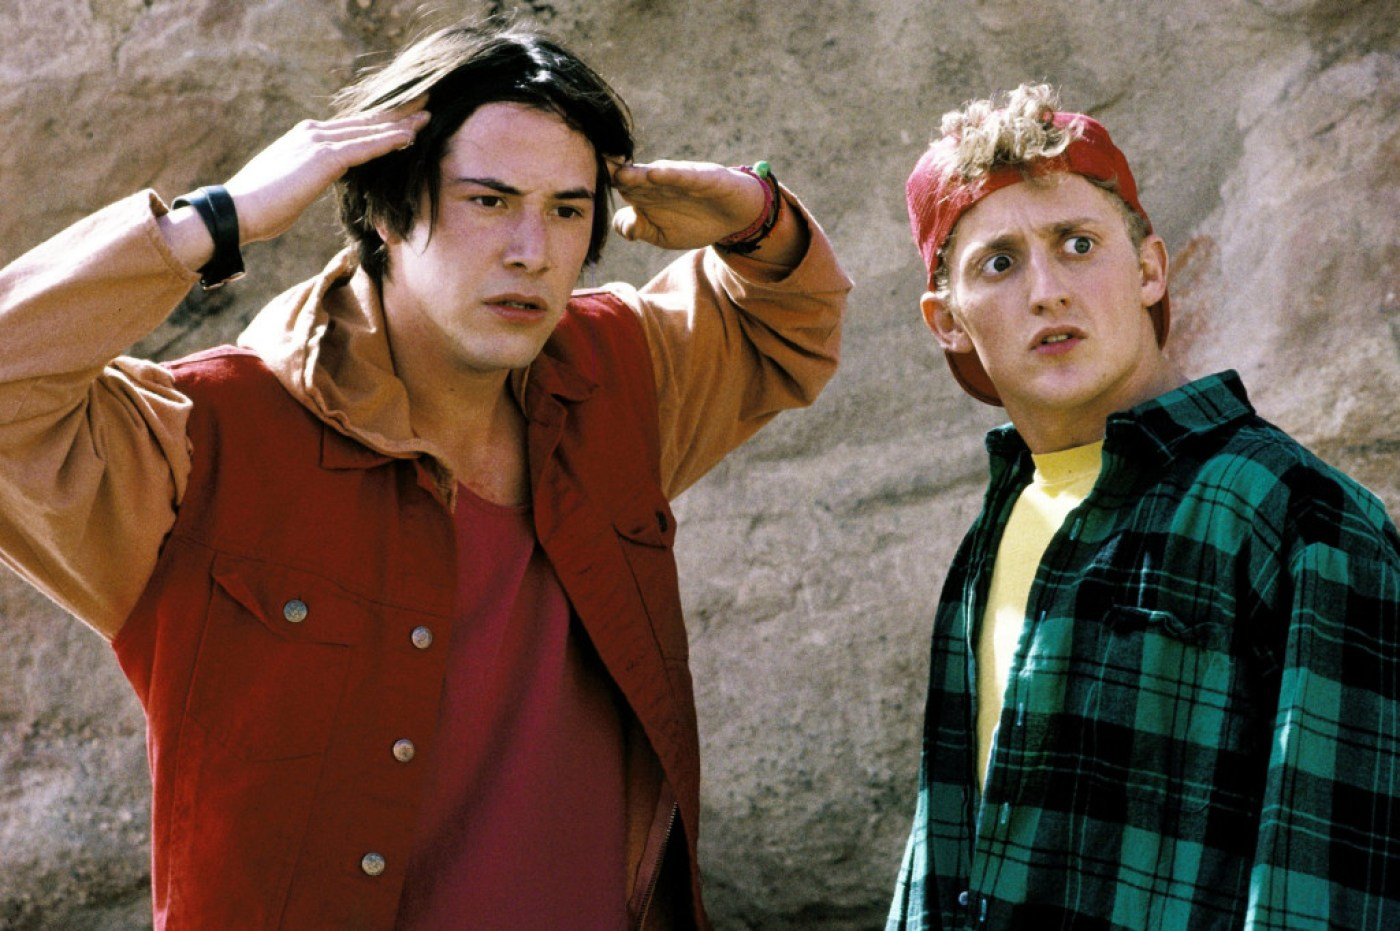 Bill and Ted's Bogus Journey - 1991